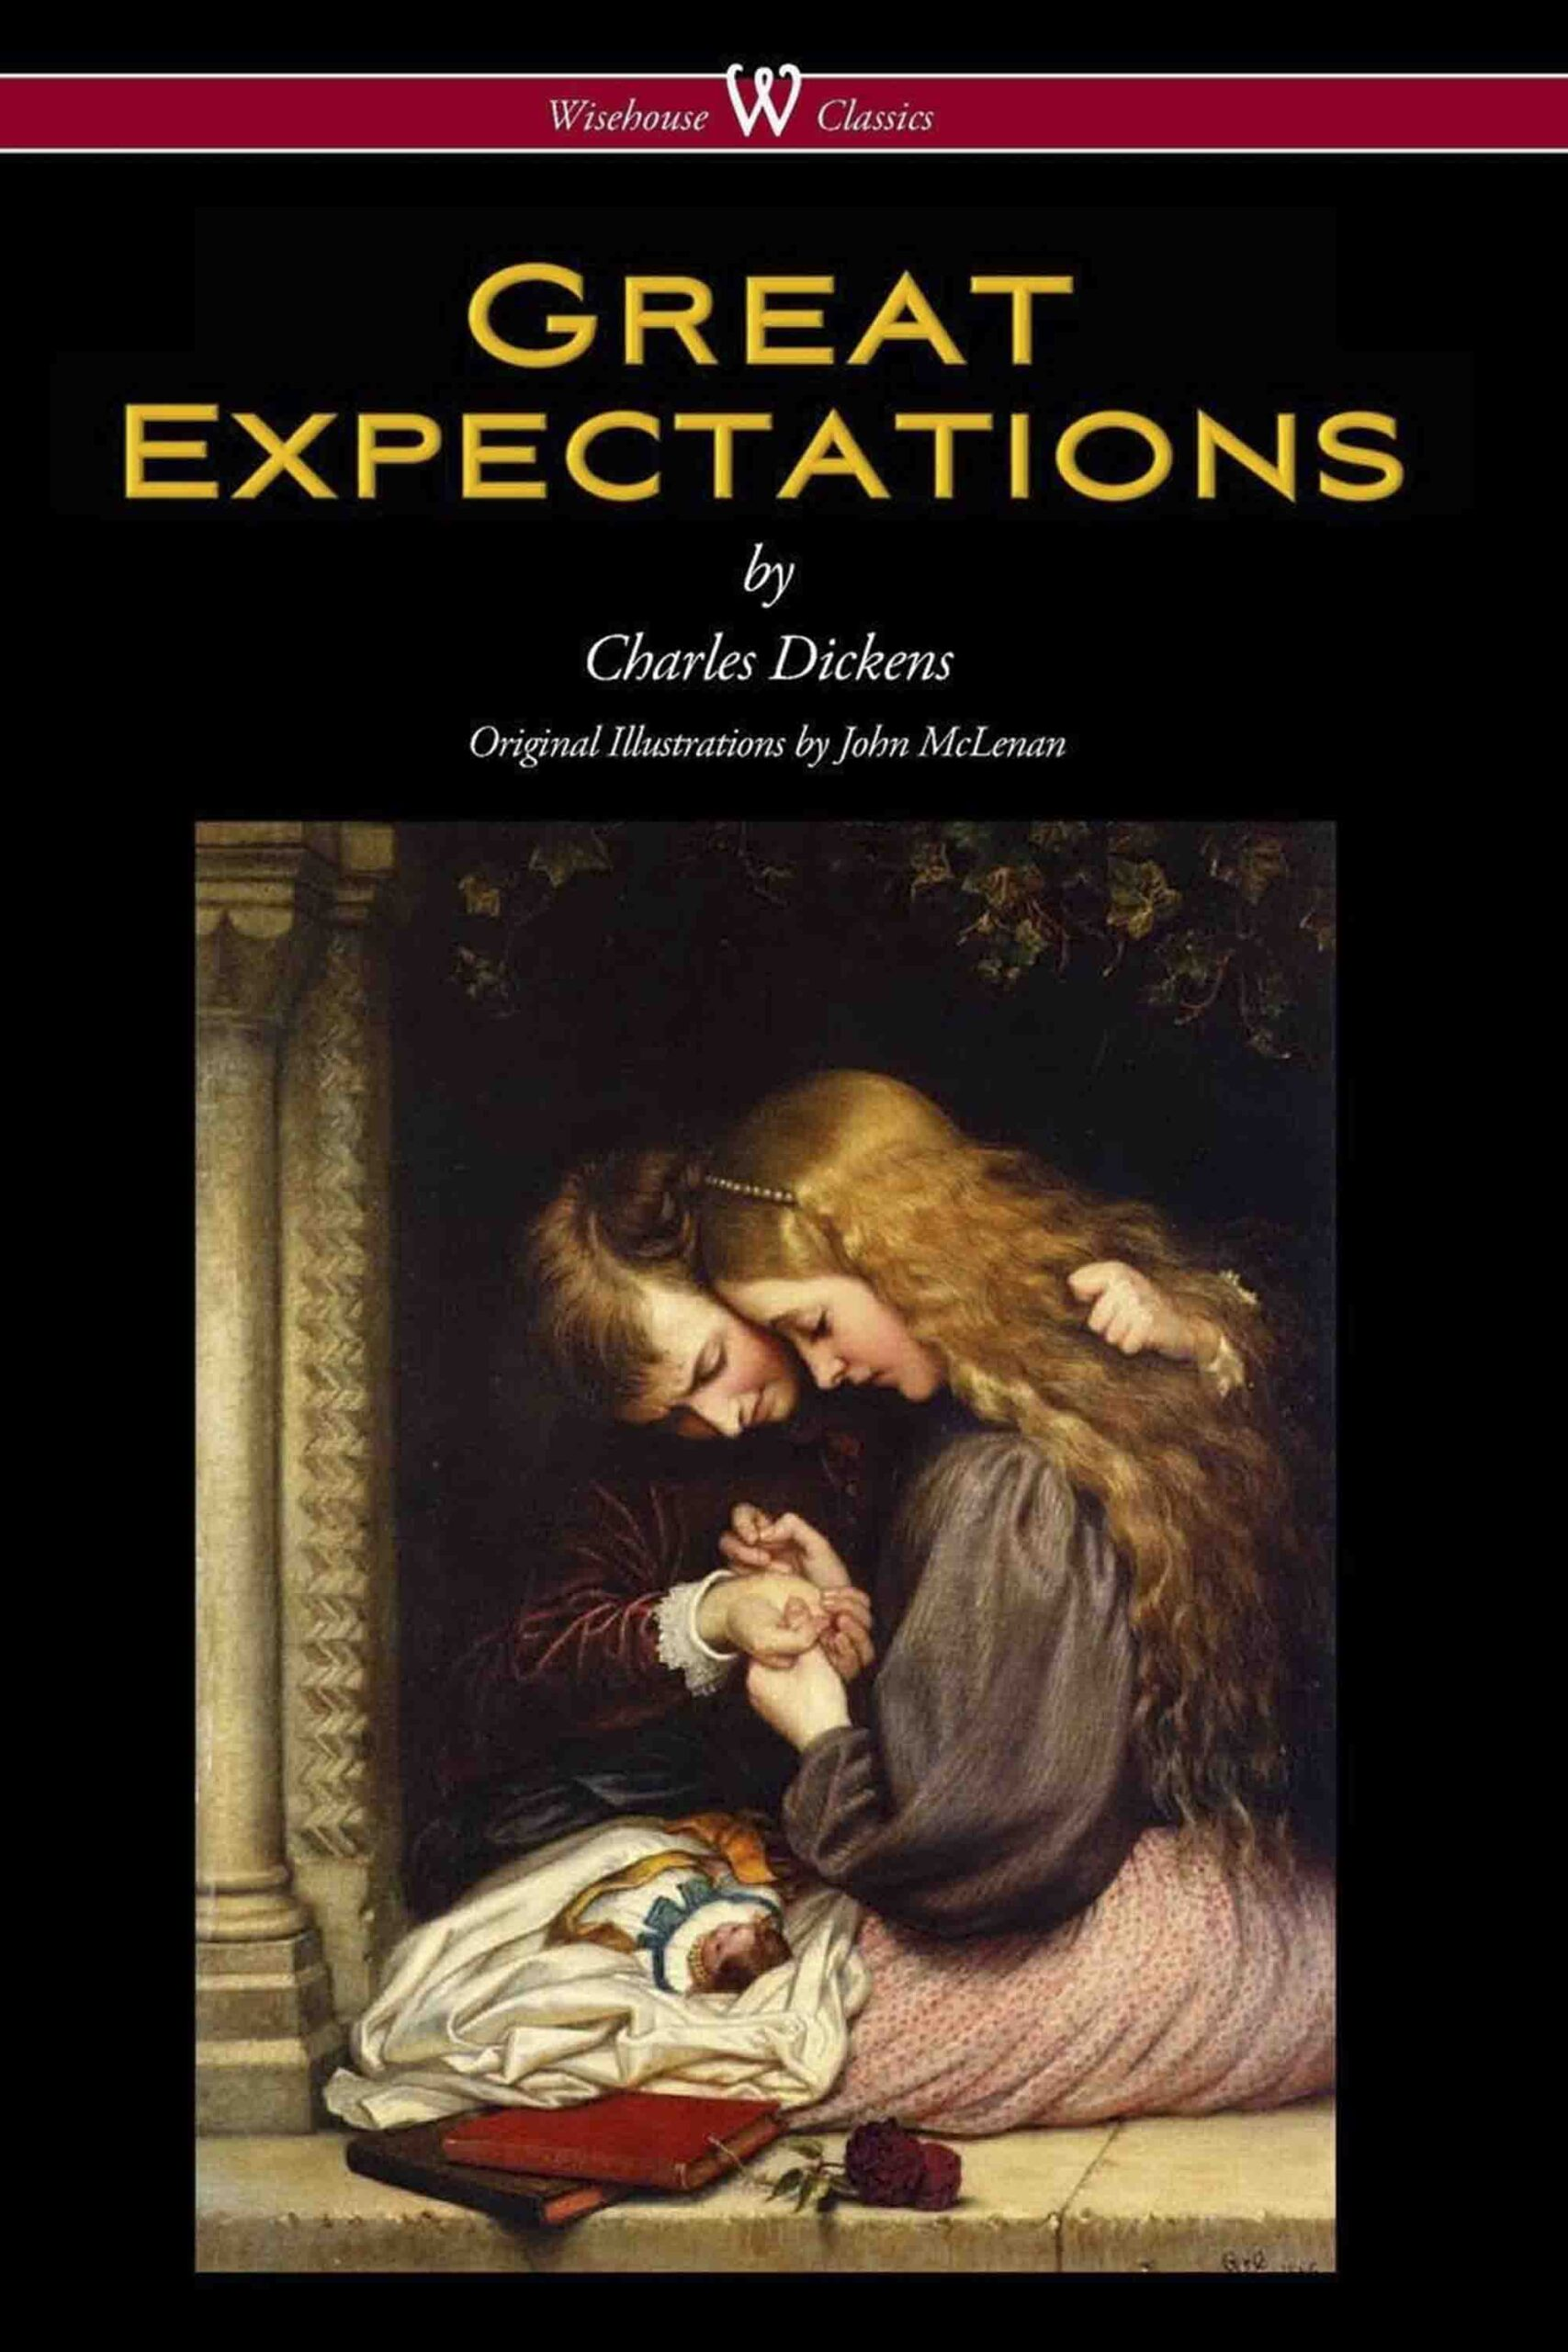 Great Expectations (Wisehouse Classics – with the original Illustrations by John McLenan 1860)